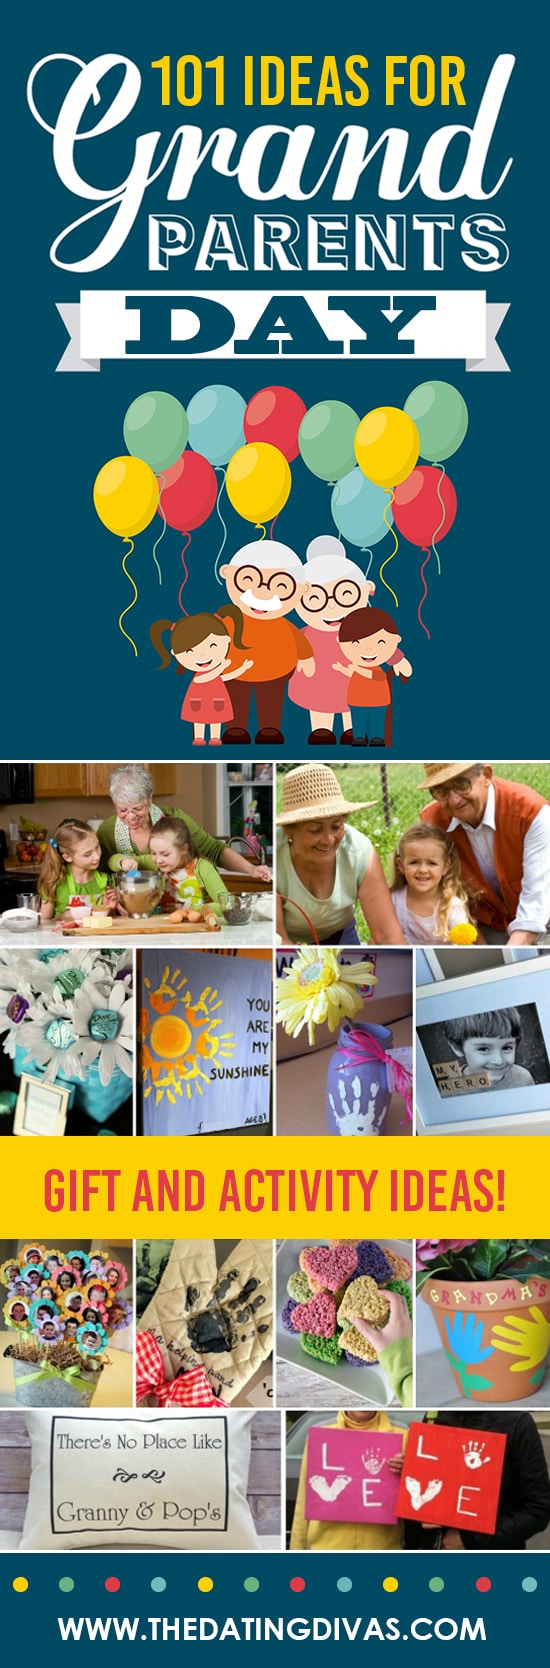 Best Happy Wedding Anniversary Wishes Images Cards Greetings Photos For Husband Wife also Paper Bag Diy Fathers Day Book together with Petanca 3 1431260 likewise Holiday Checklist in addition 10133167890100895. on activities for grandparents day